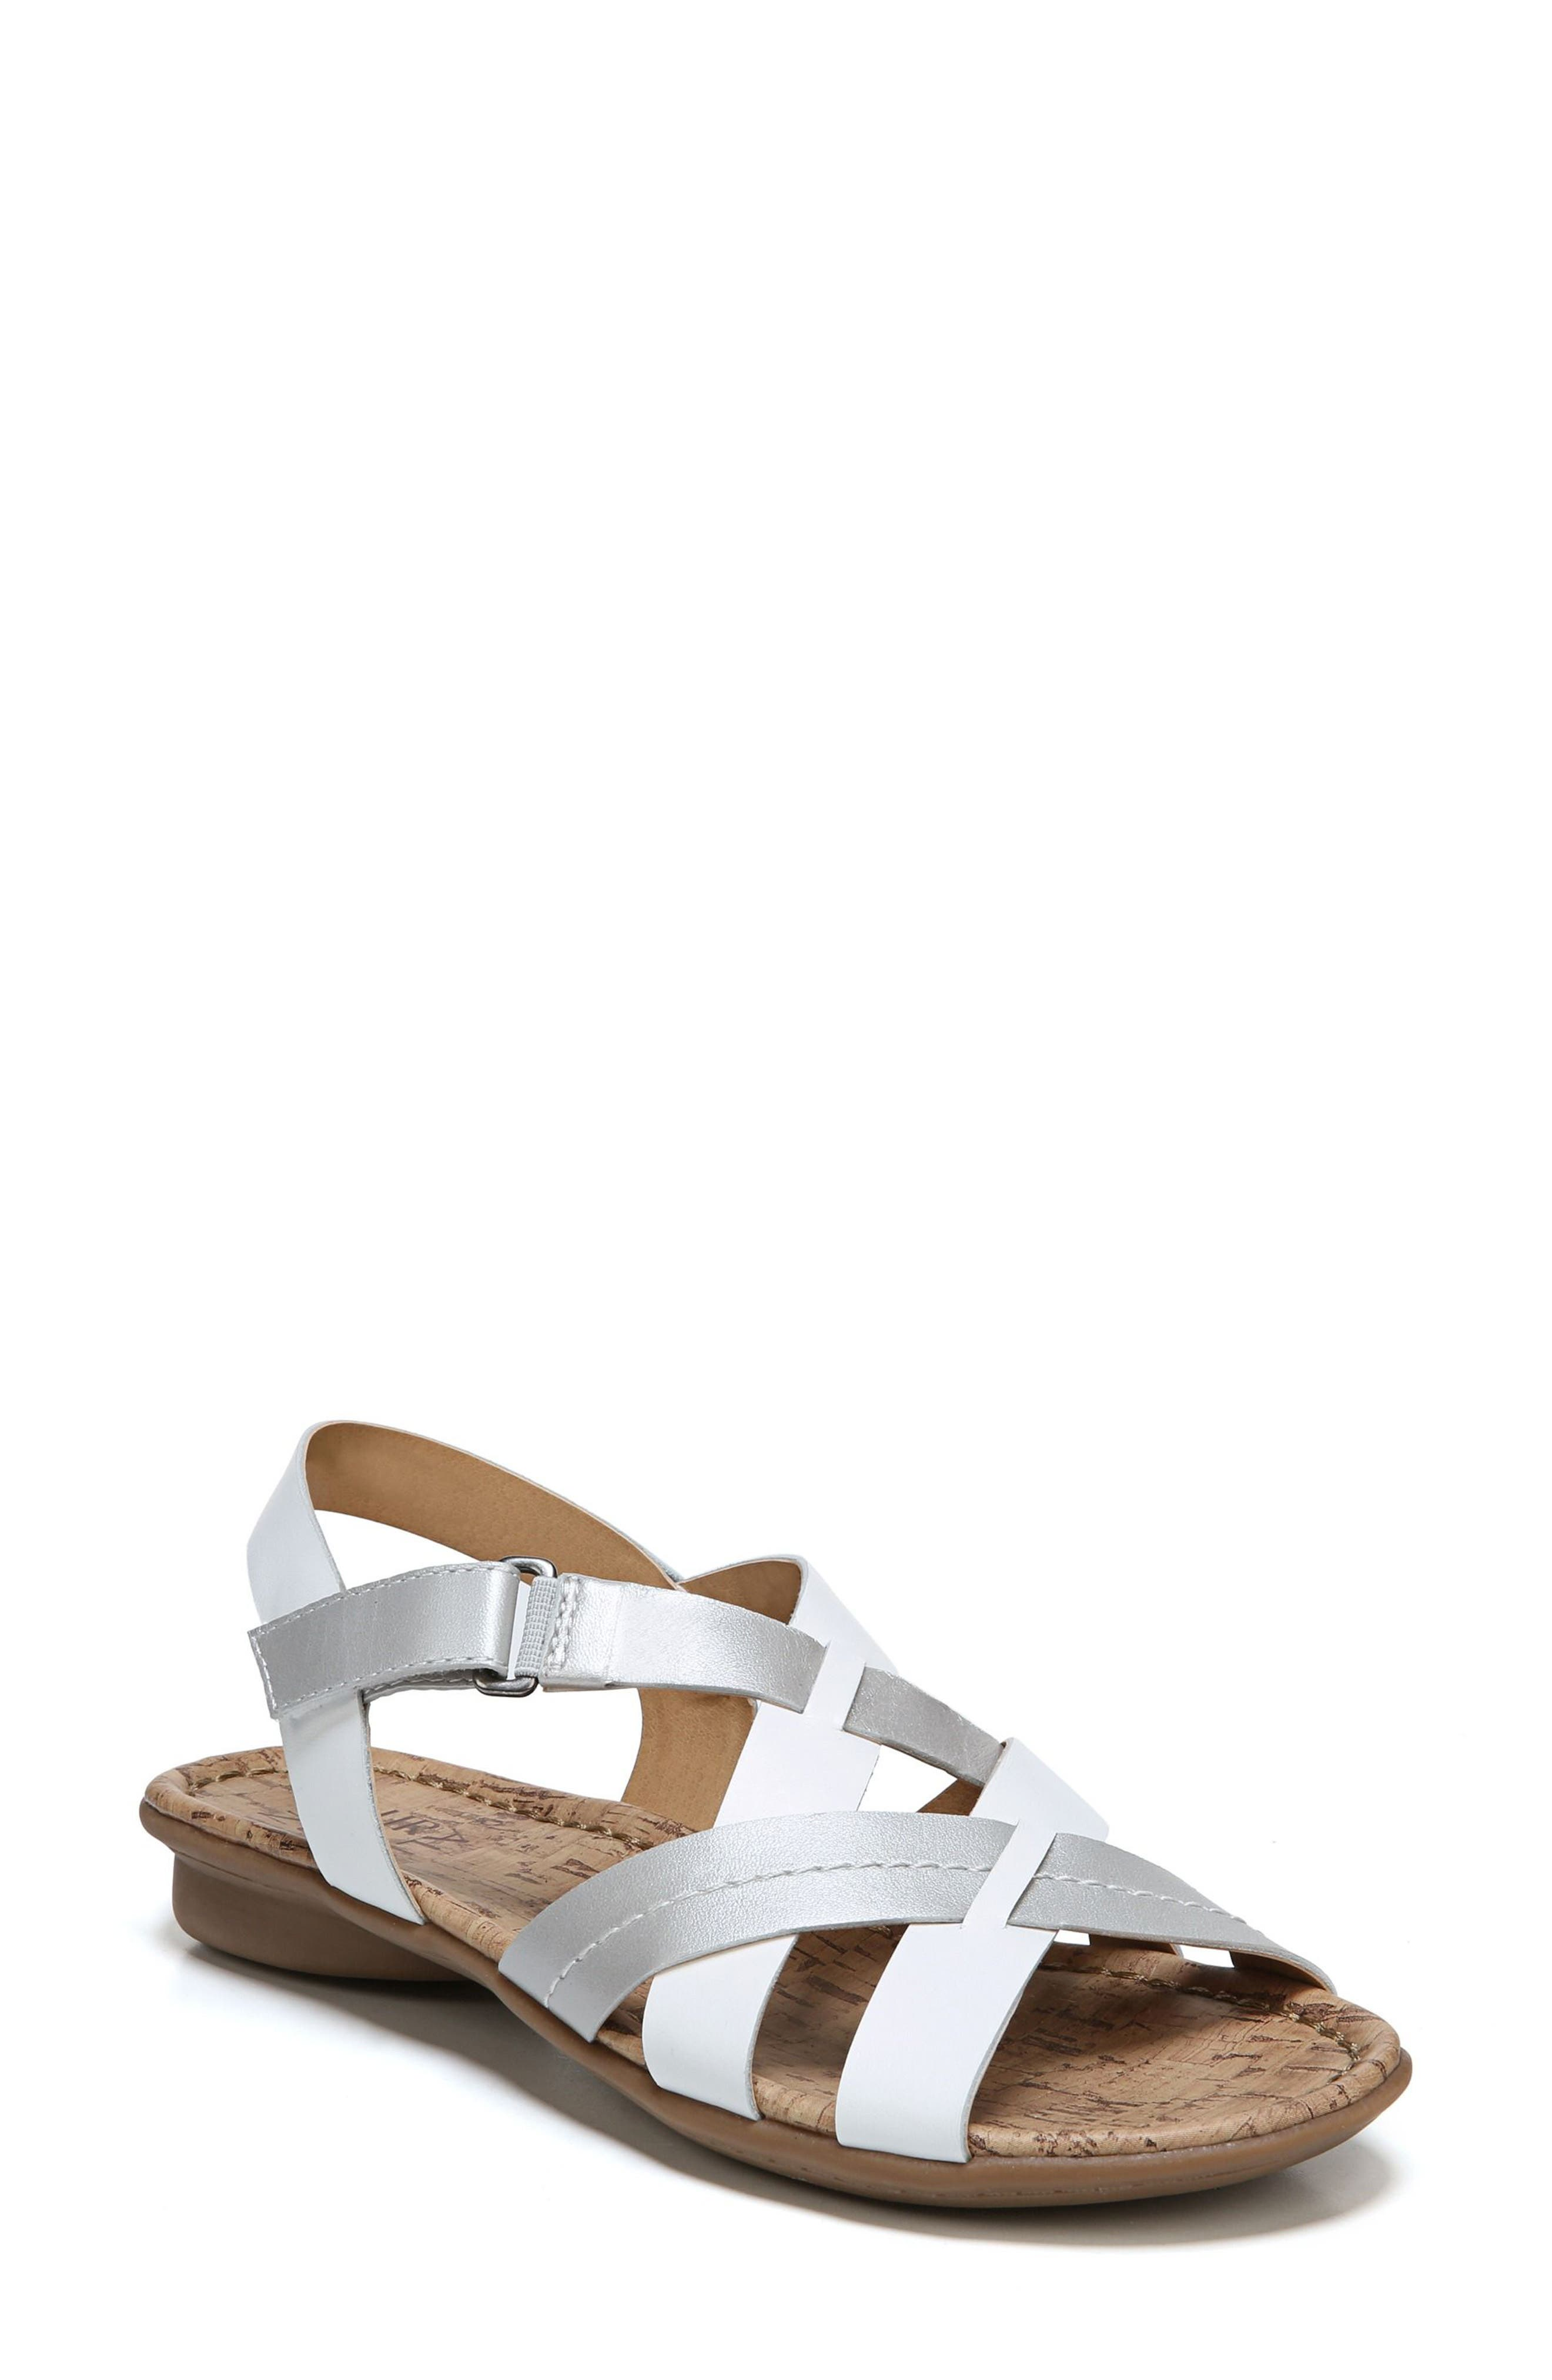 Wyla Sandal,                         Main,                         color, White/ Silver Leather